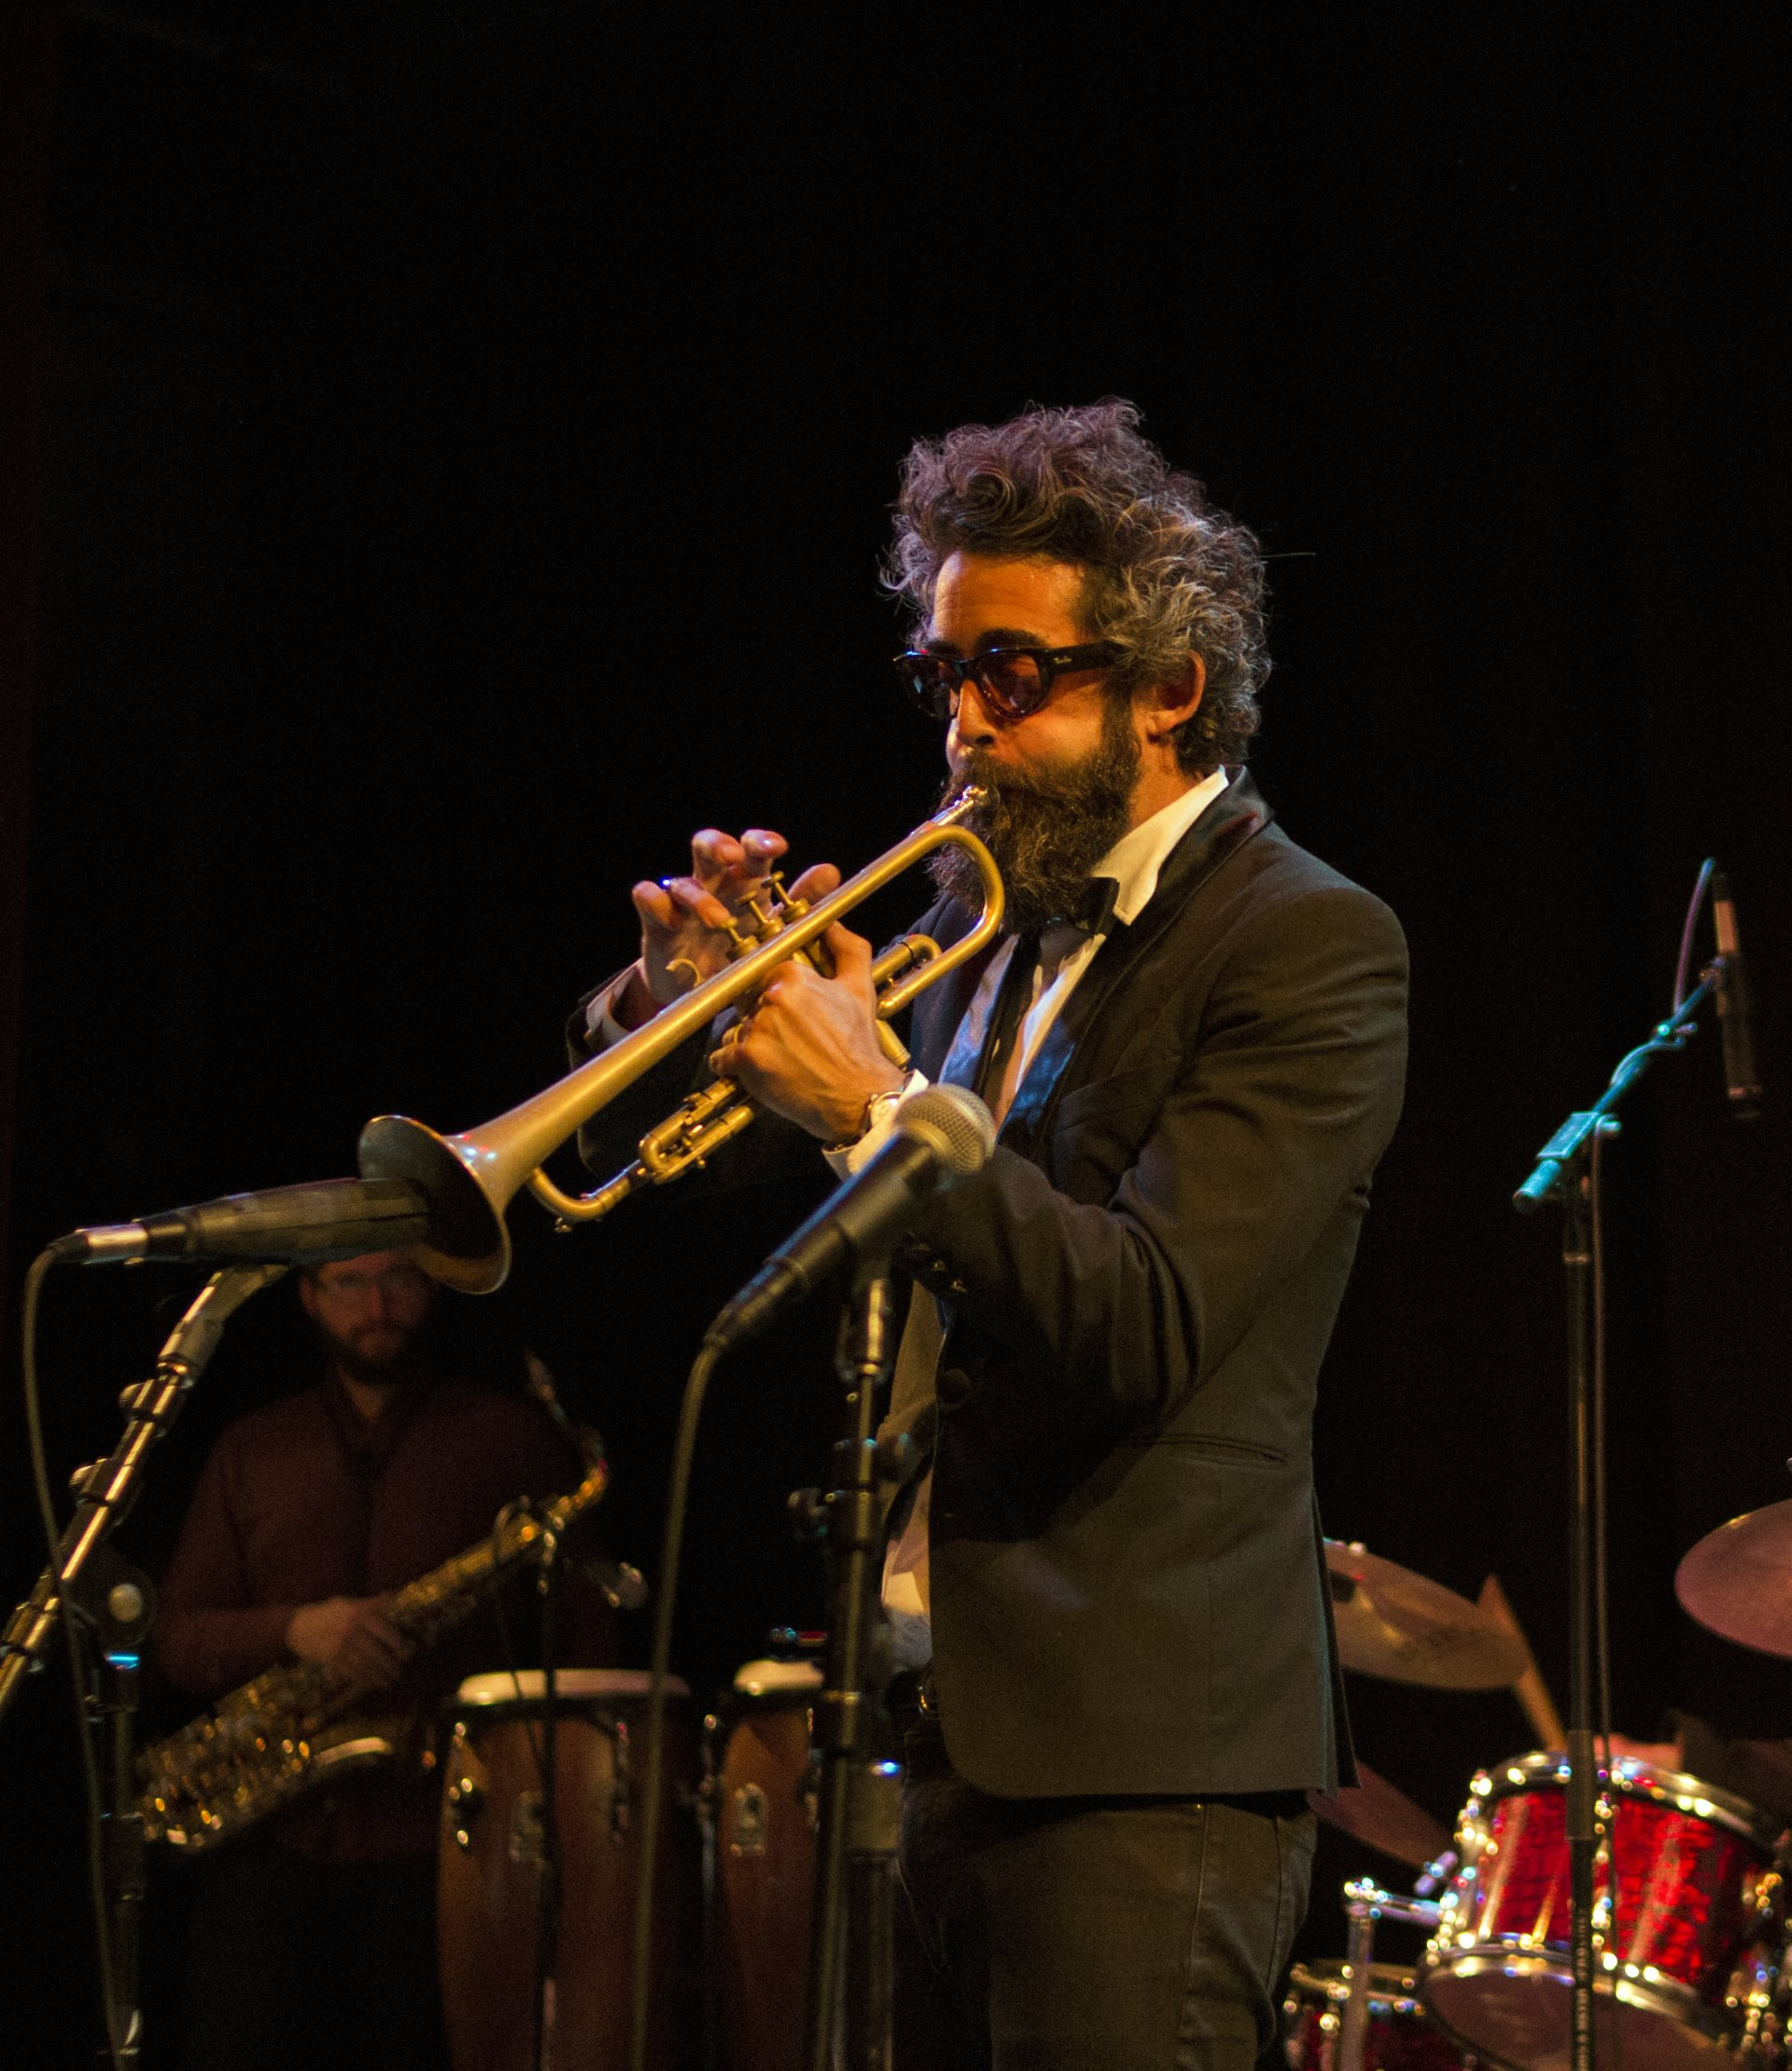 Arcata trumpeter, Nicholas Dominic Tralvola, in the middle of a solo during the Mile Davis tribute show at Arcata Playhouse on Saturday Sept. 8,2018. | Photo by Tony Wallin